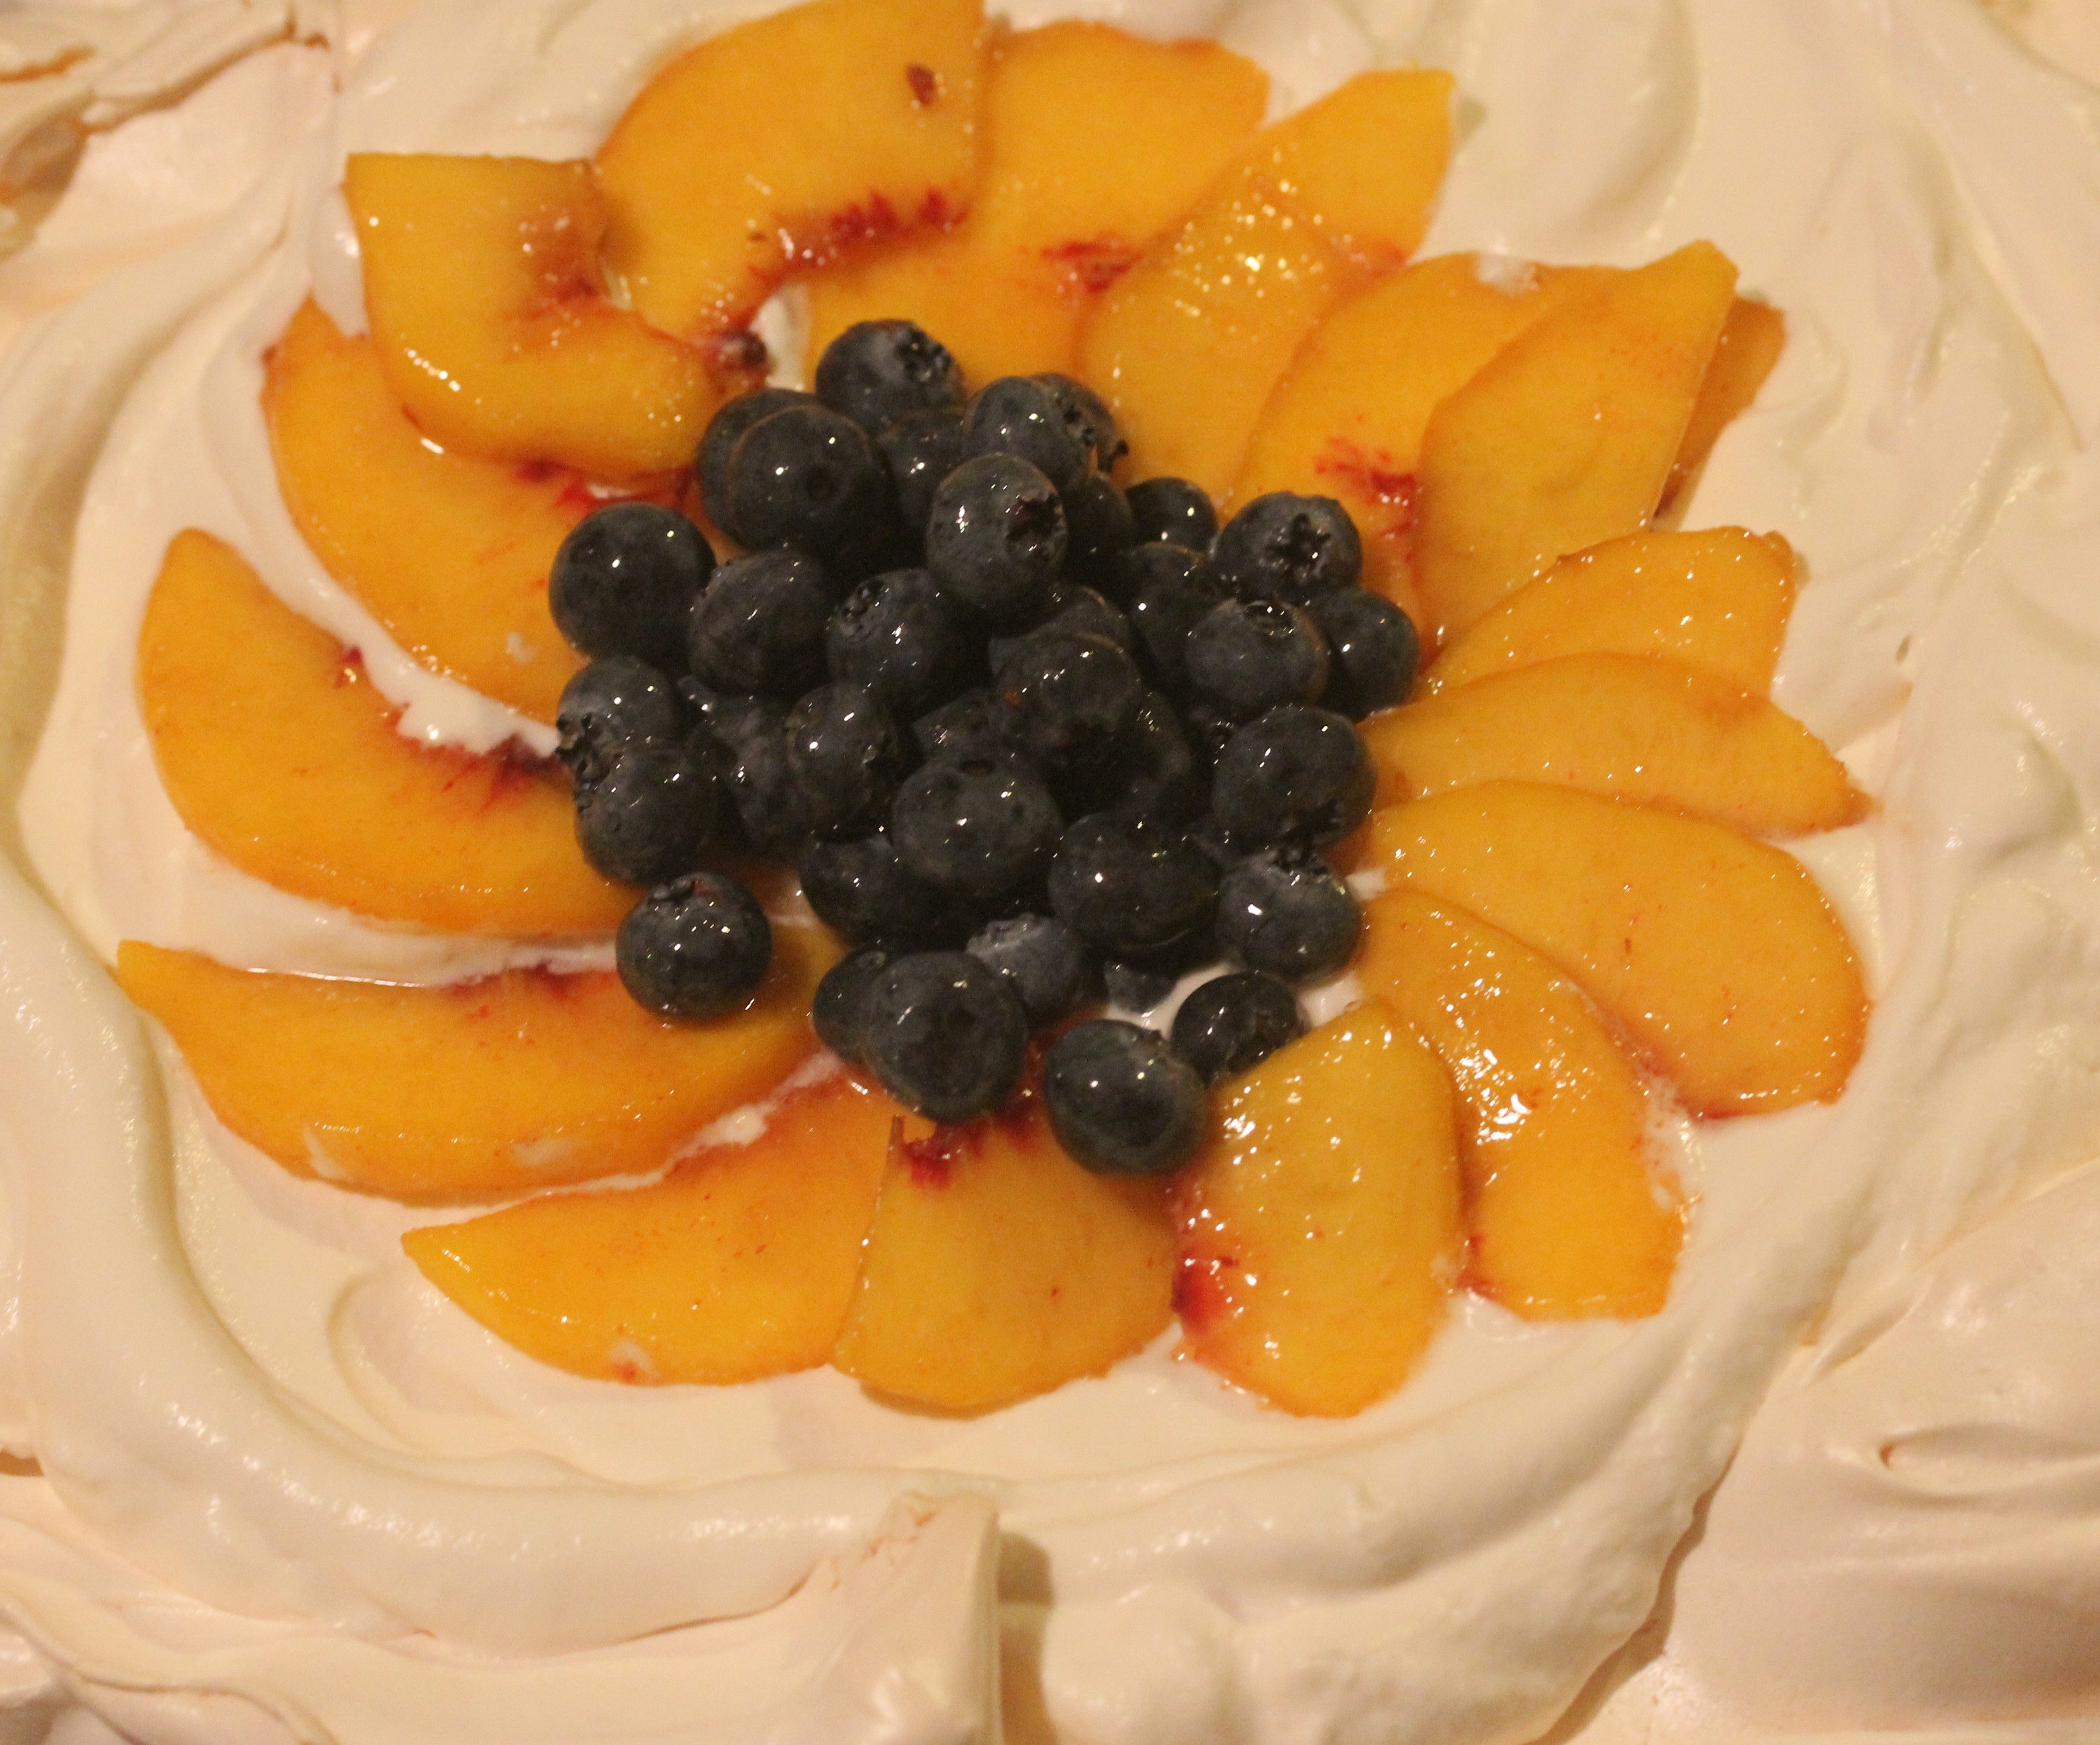 Classic Fruit Pavlova with Blueberries and Peaches or Whatever